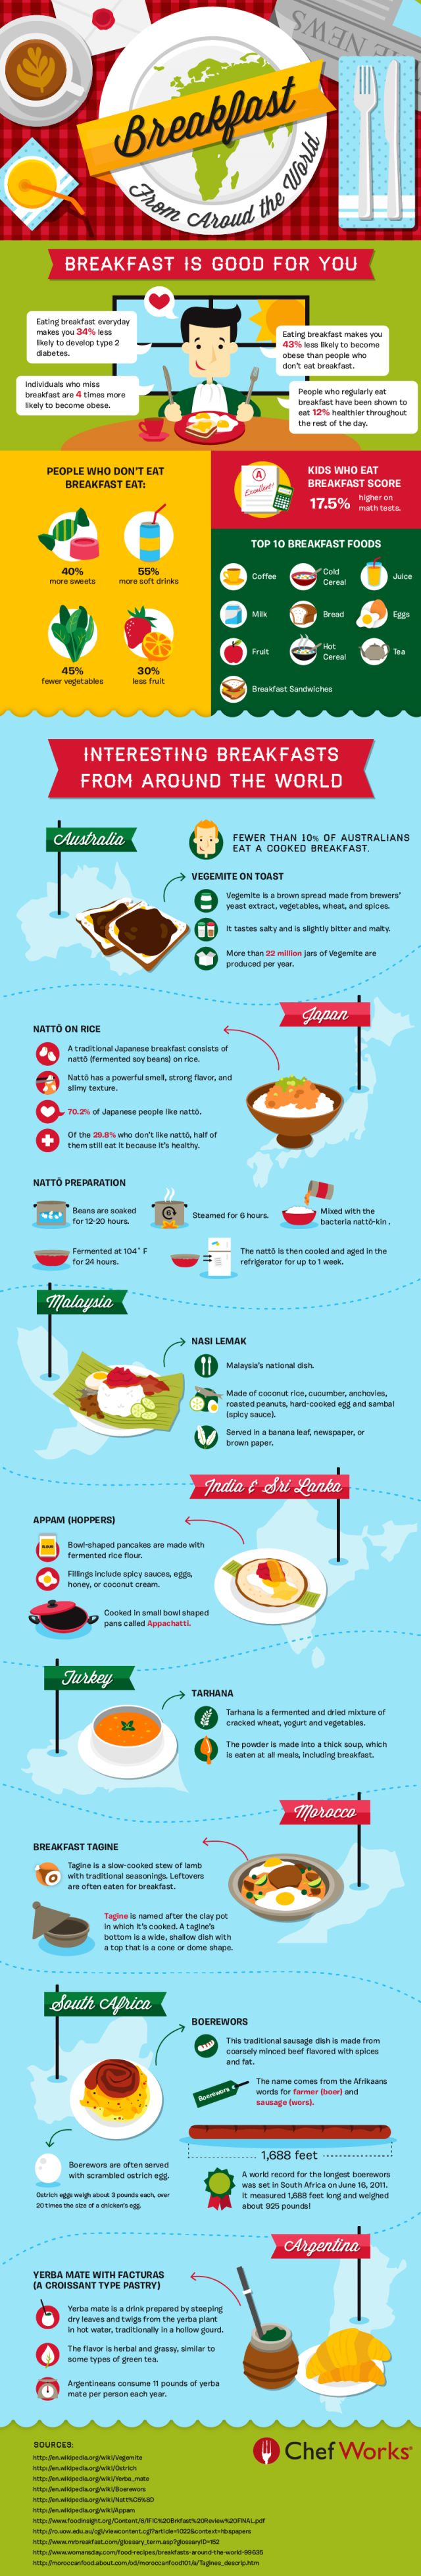 Breakfast From Around the World [infographic]